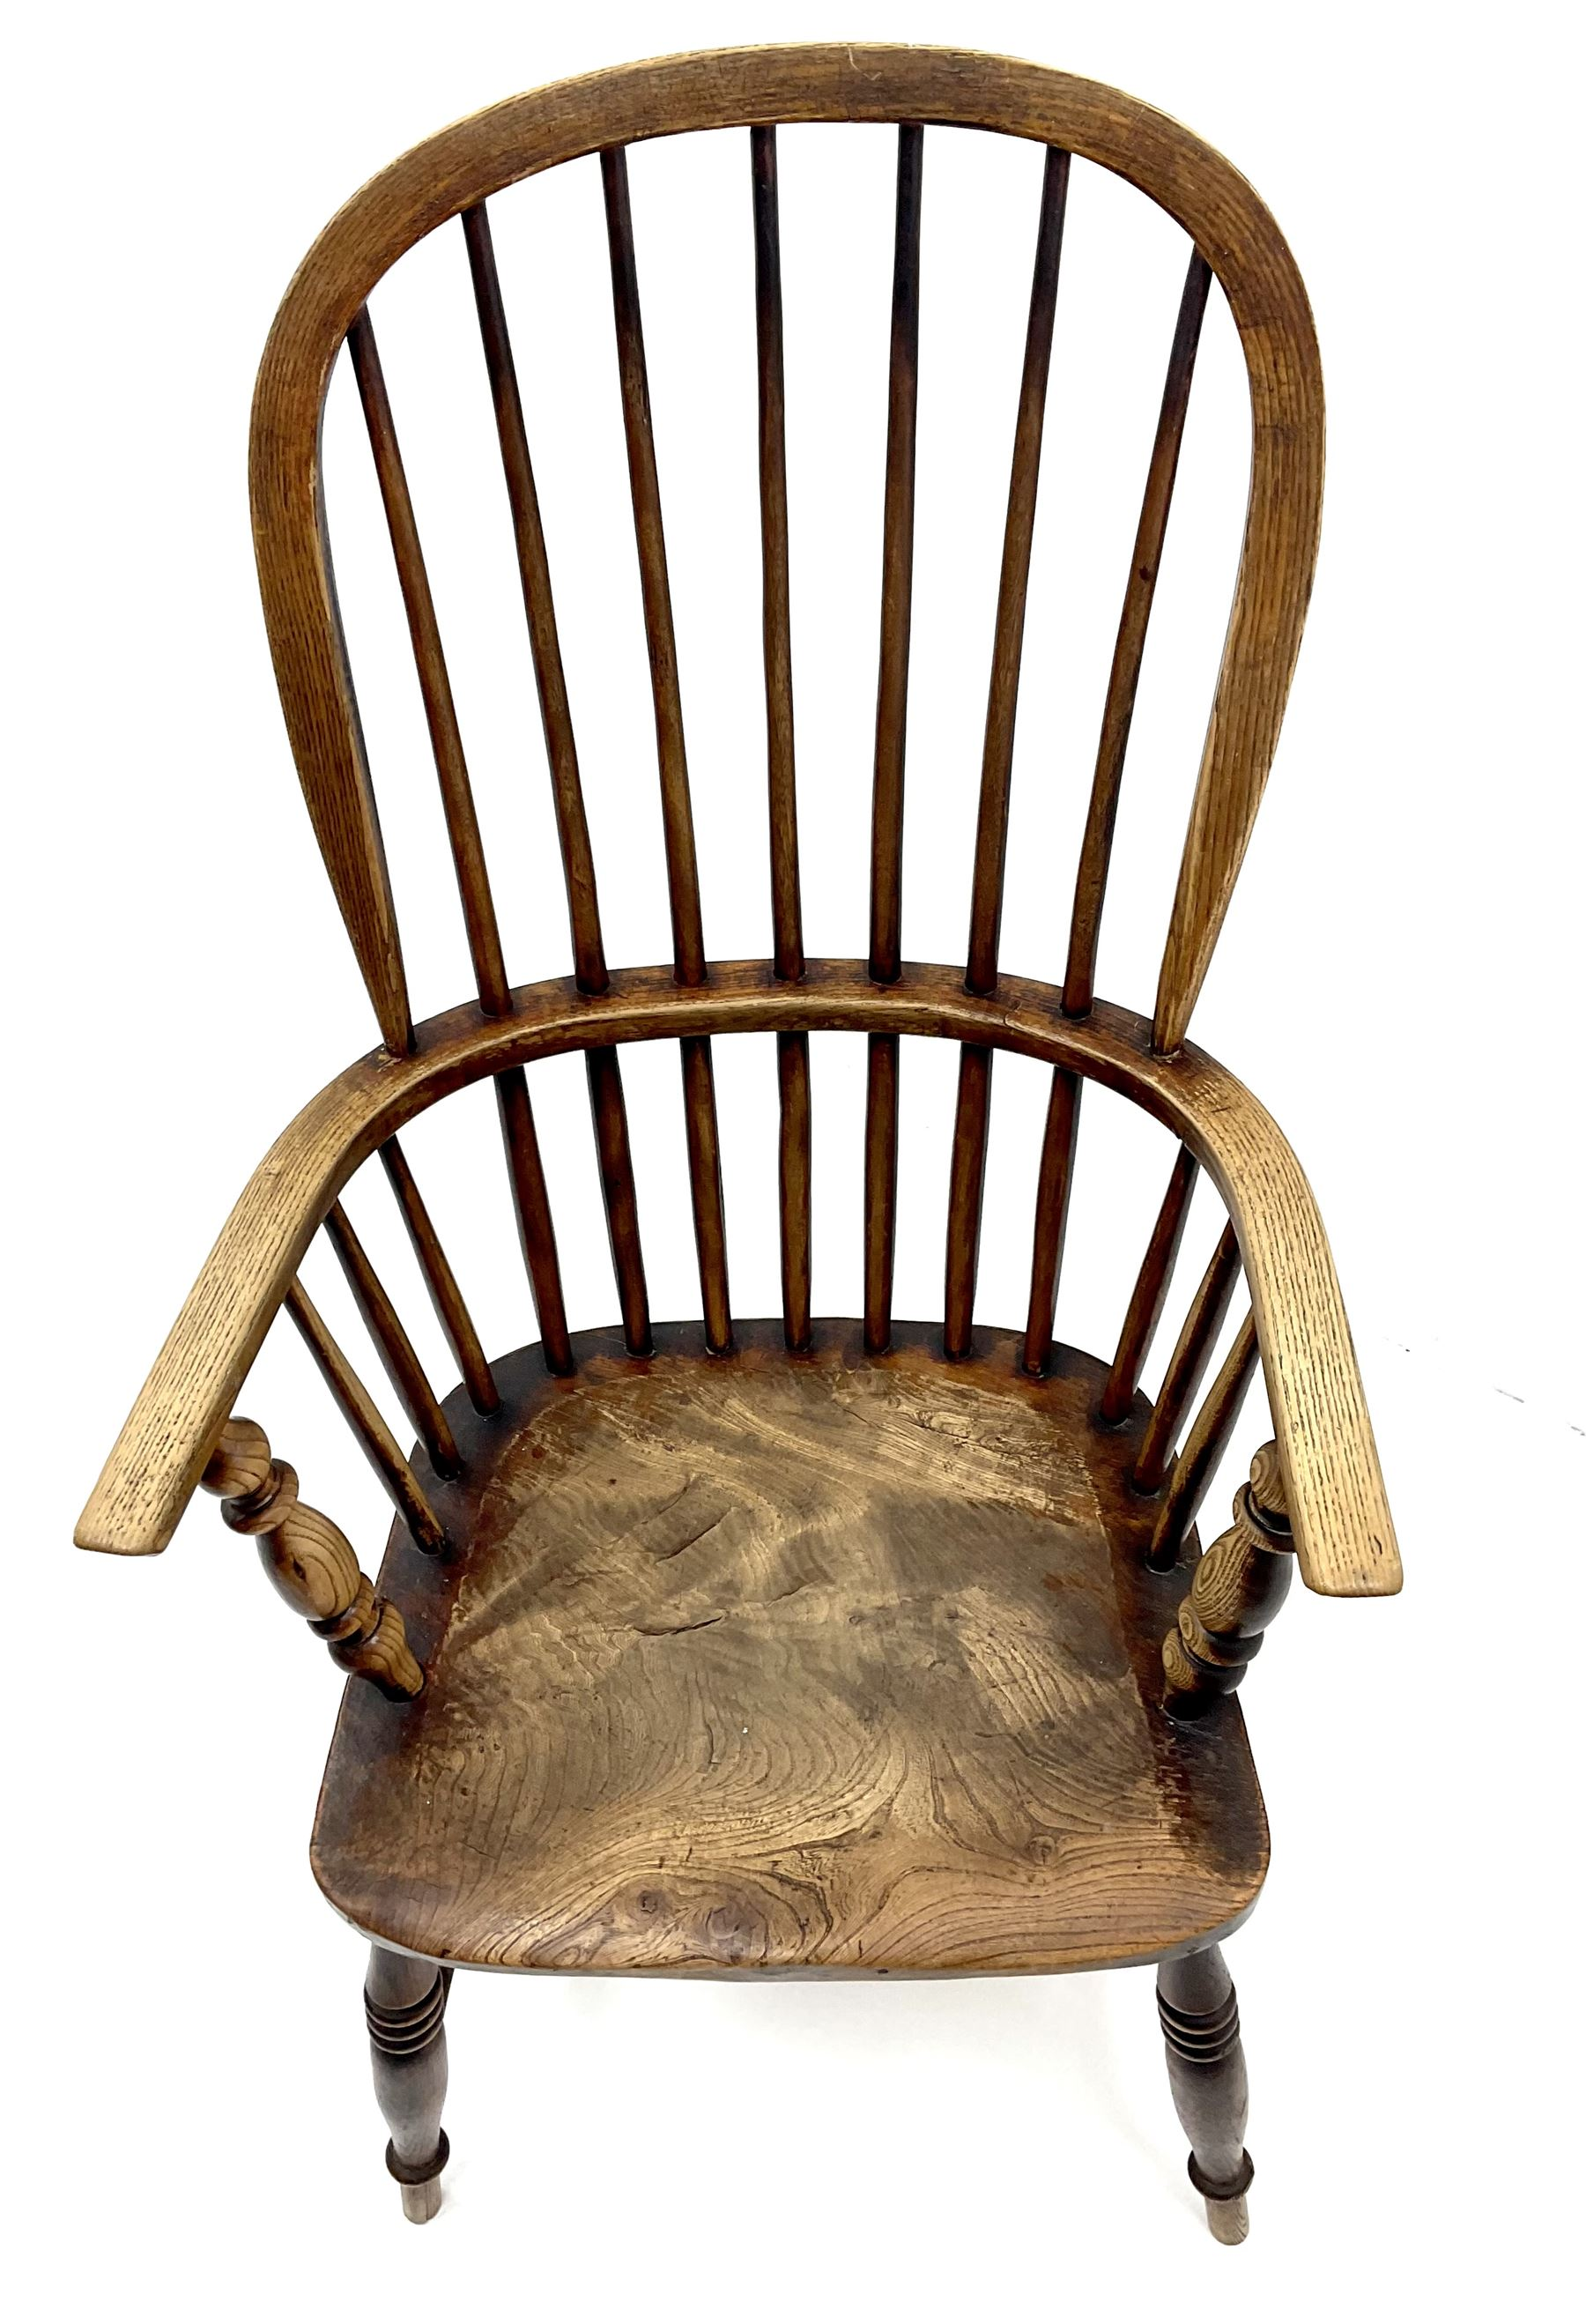 19th century ash and elm high back Windsor chair - Image 3 of 3